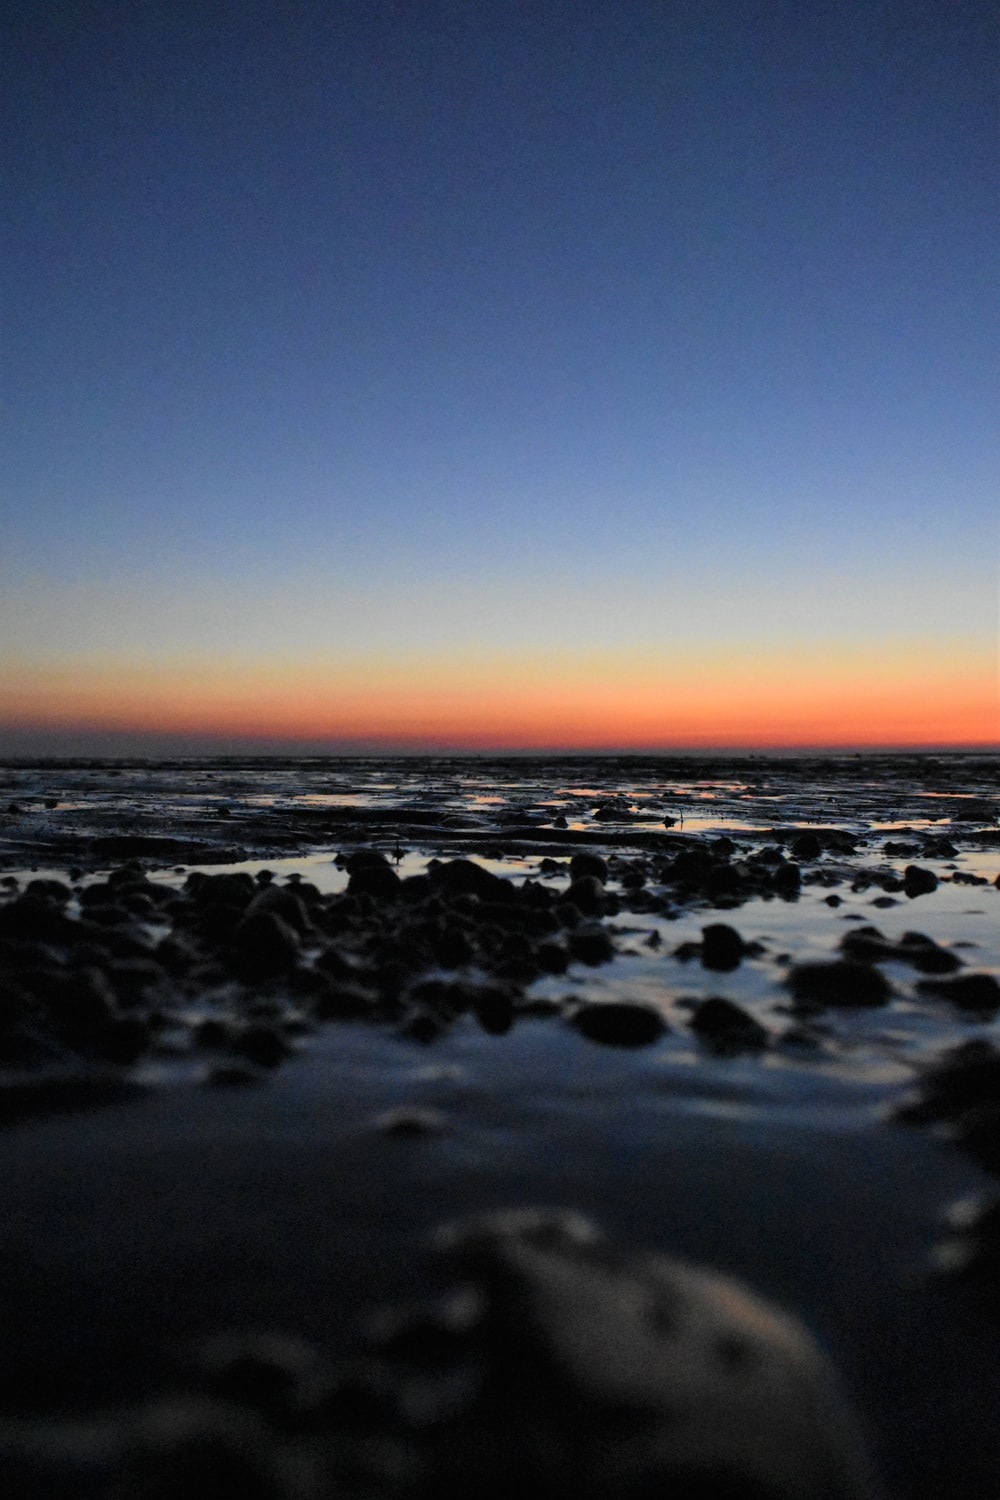 black rocks on the beach during sunset